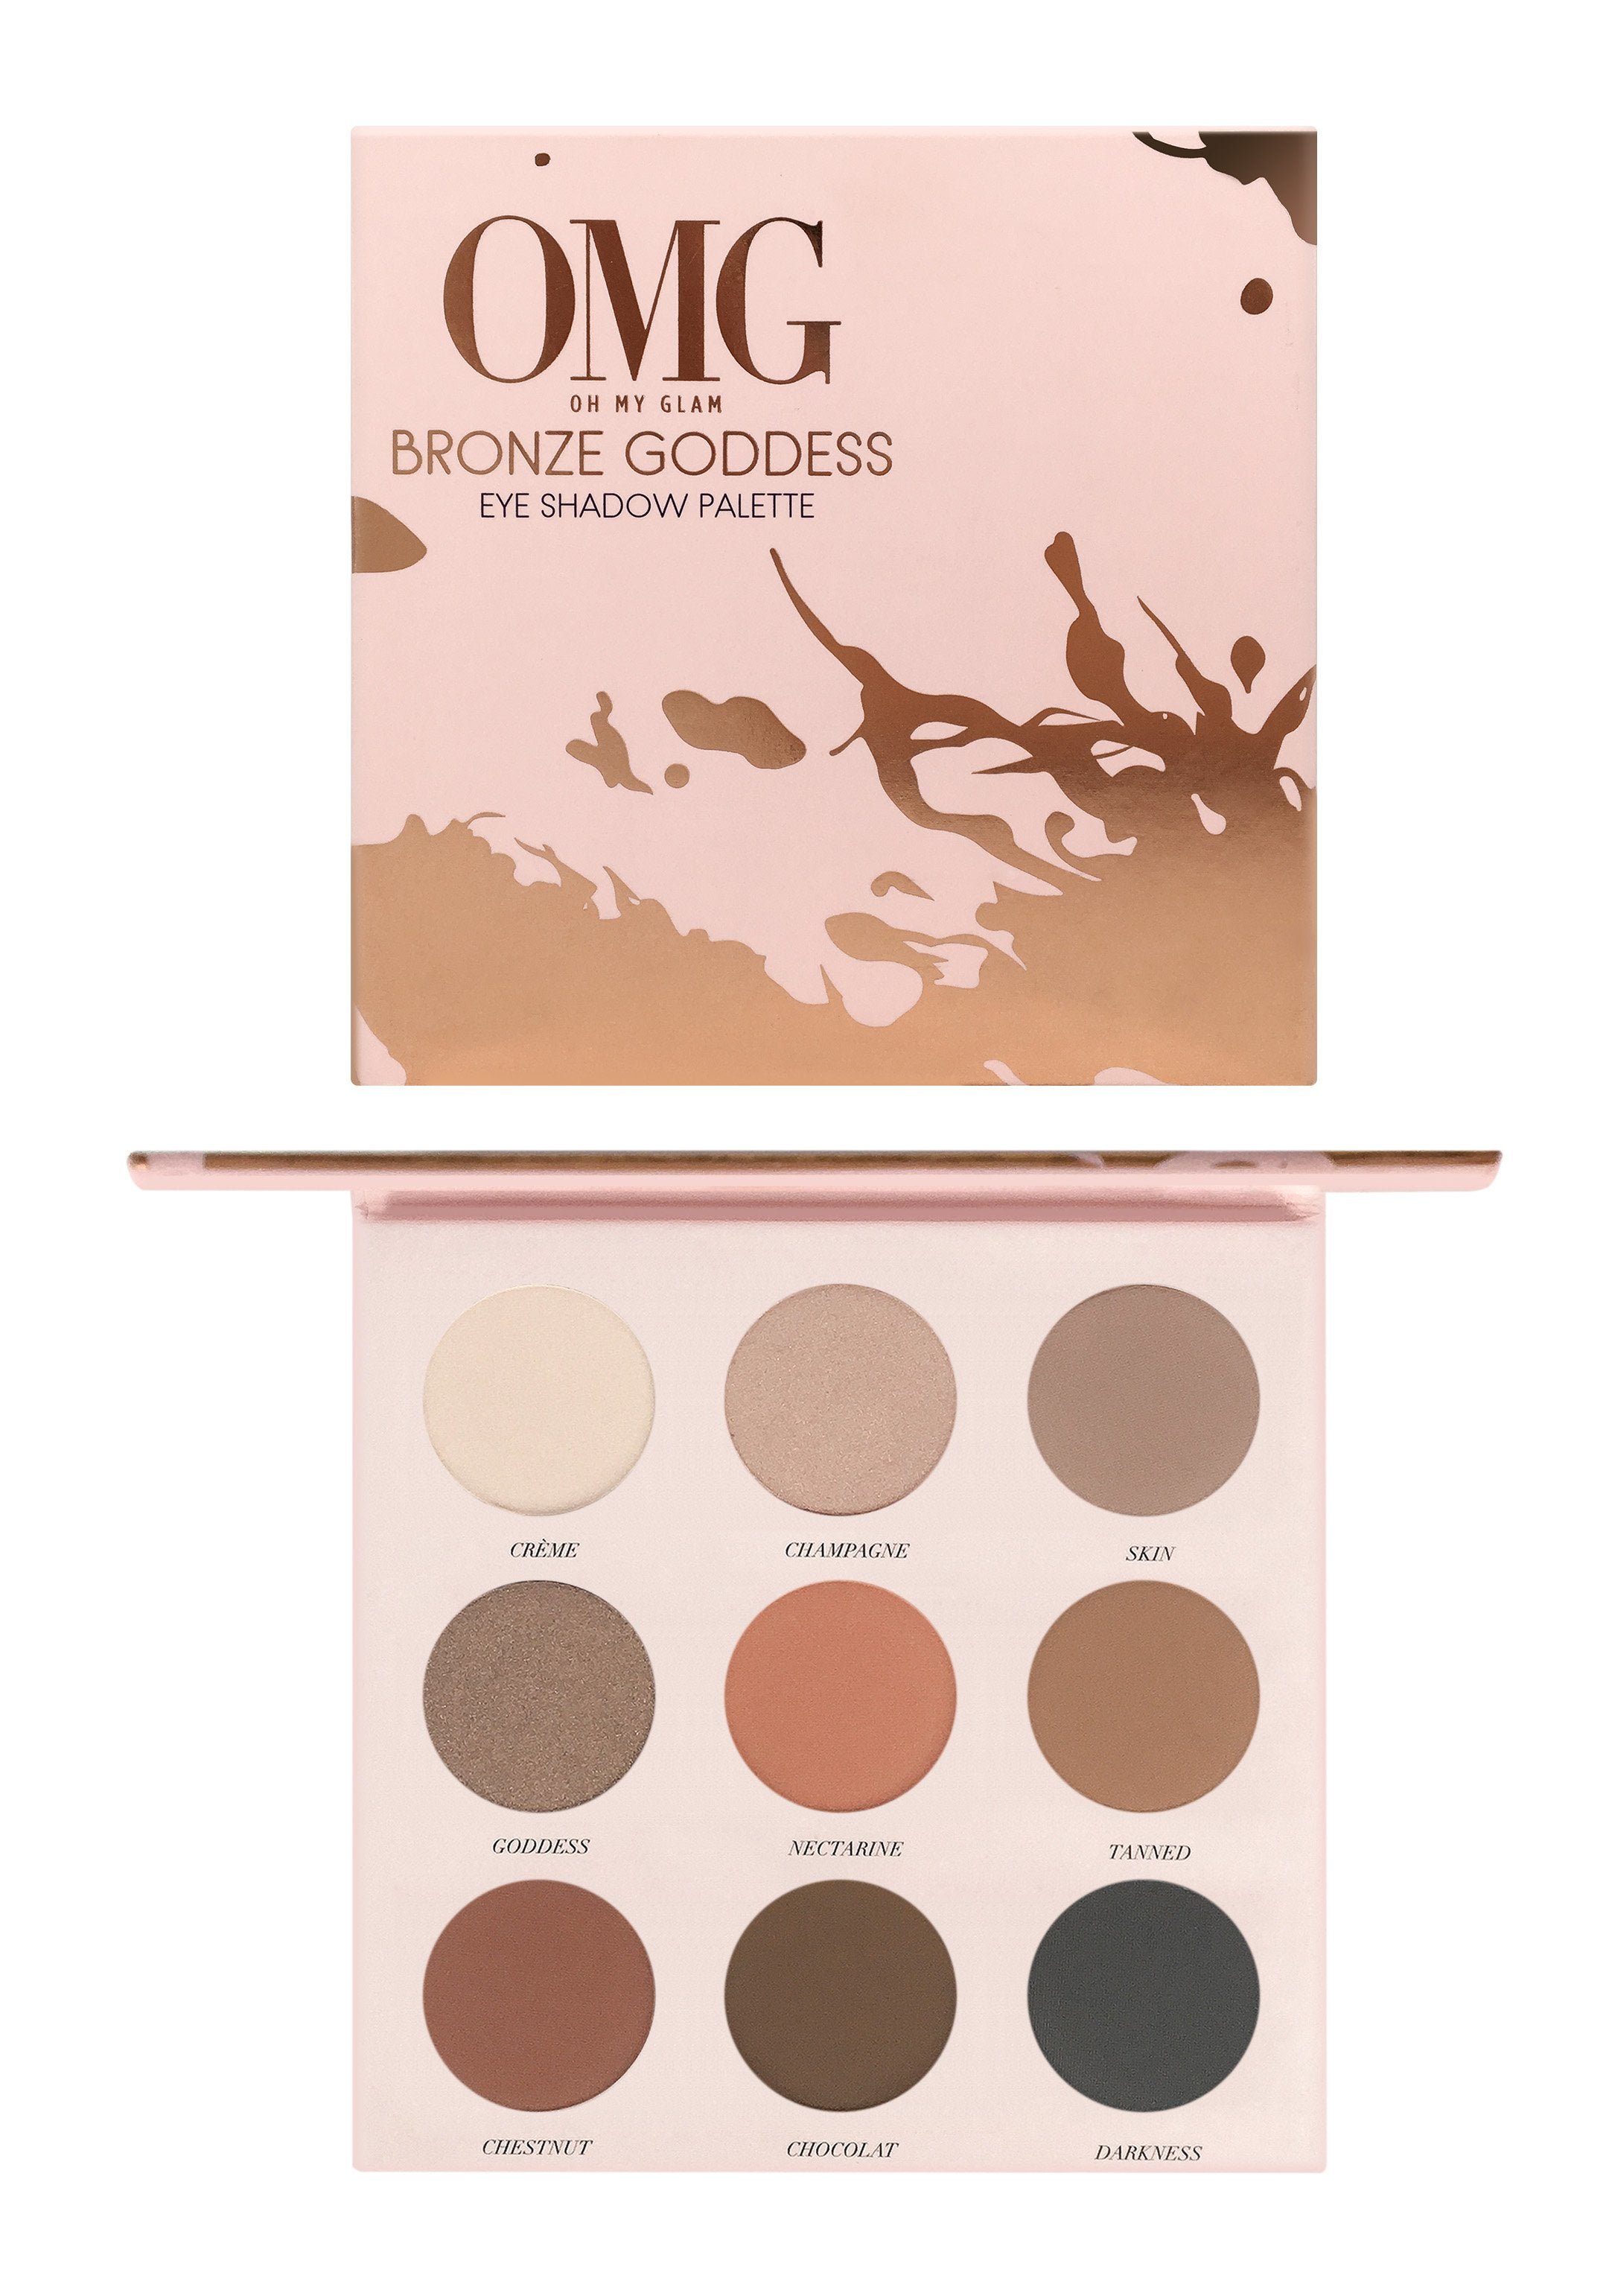 OMG Bronze Goddess Eyeshadow Palette